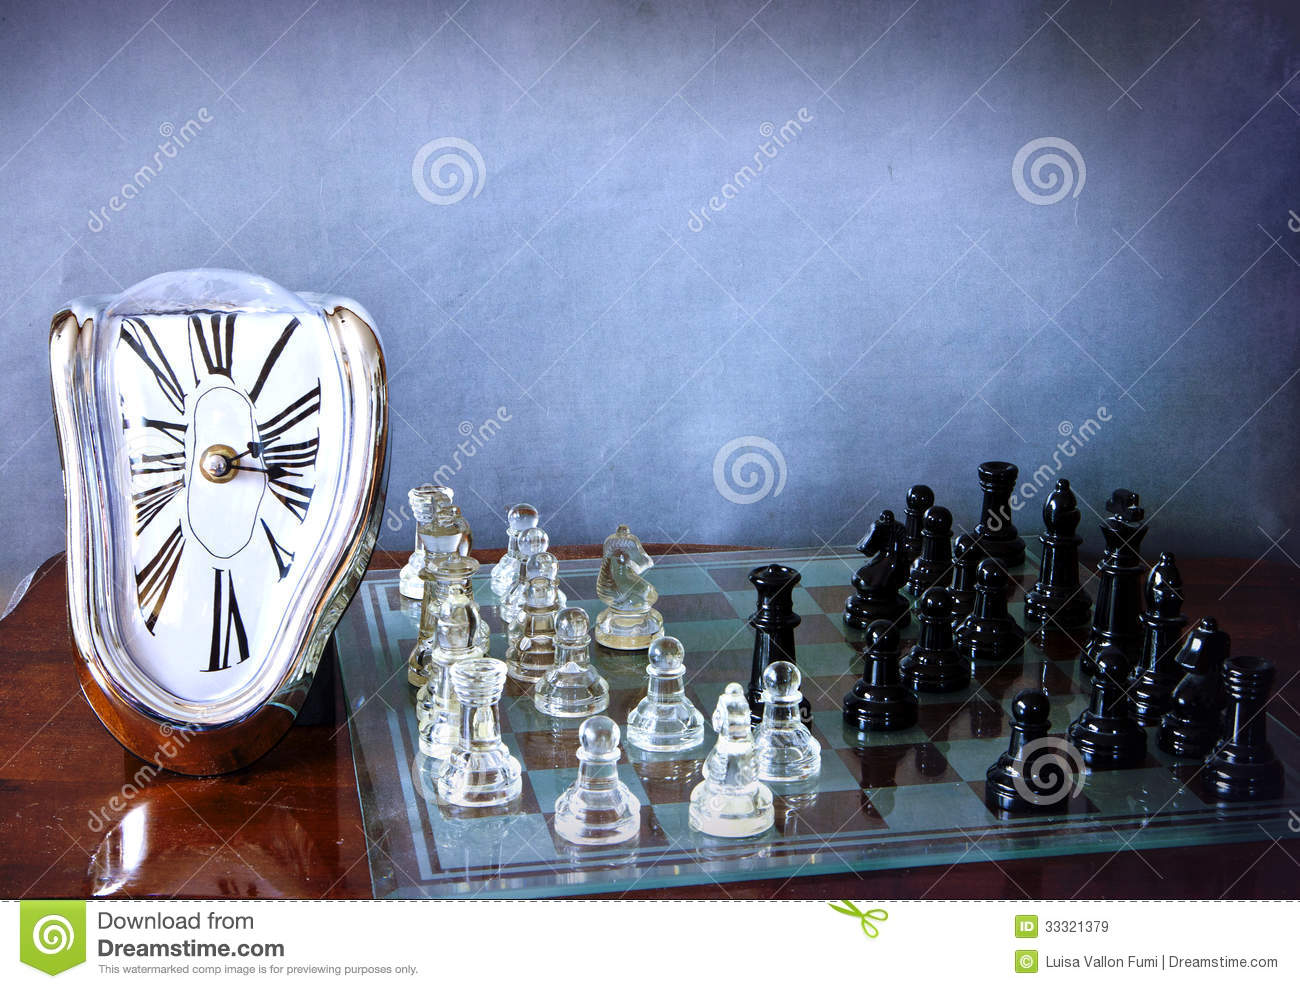 Chessboard Game And Dali like Clock Royalty Free Stock